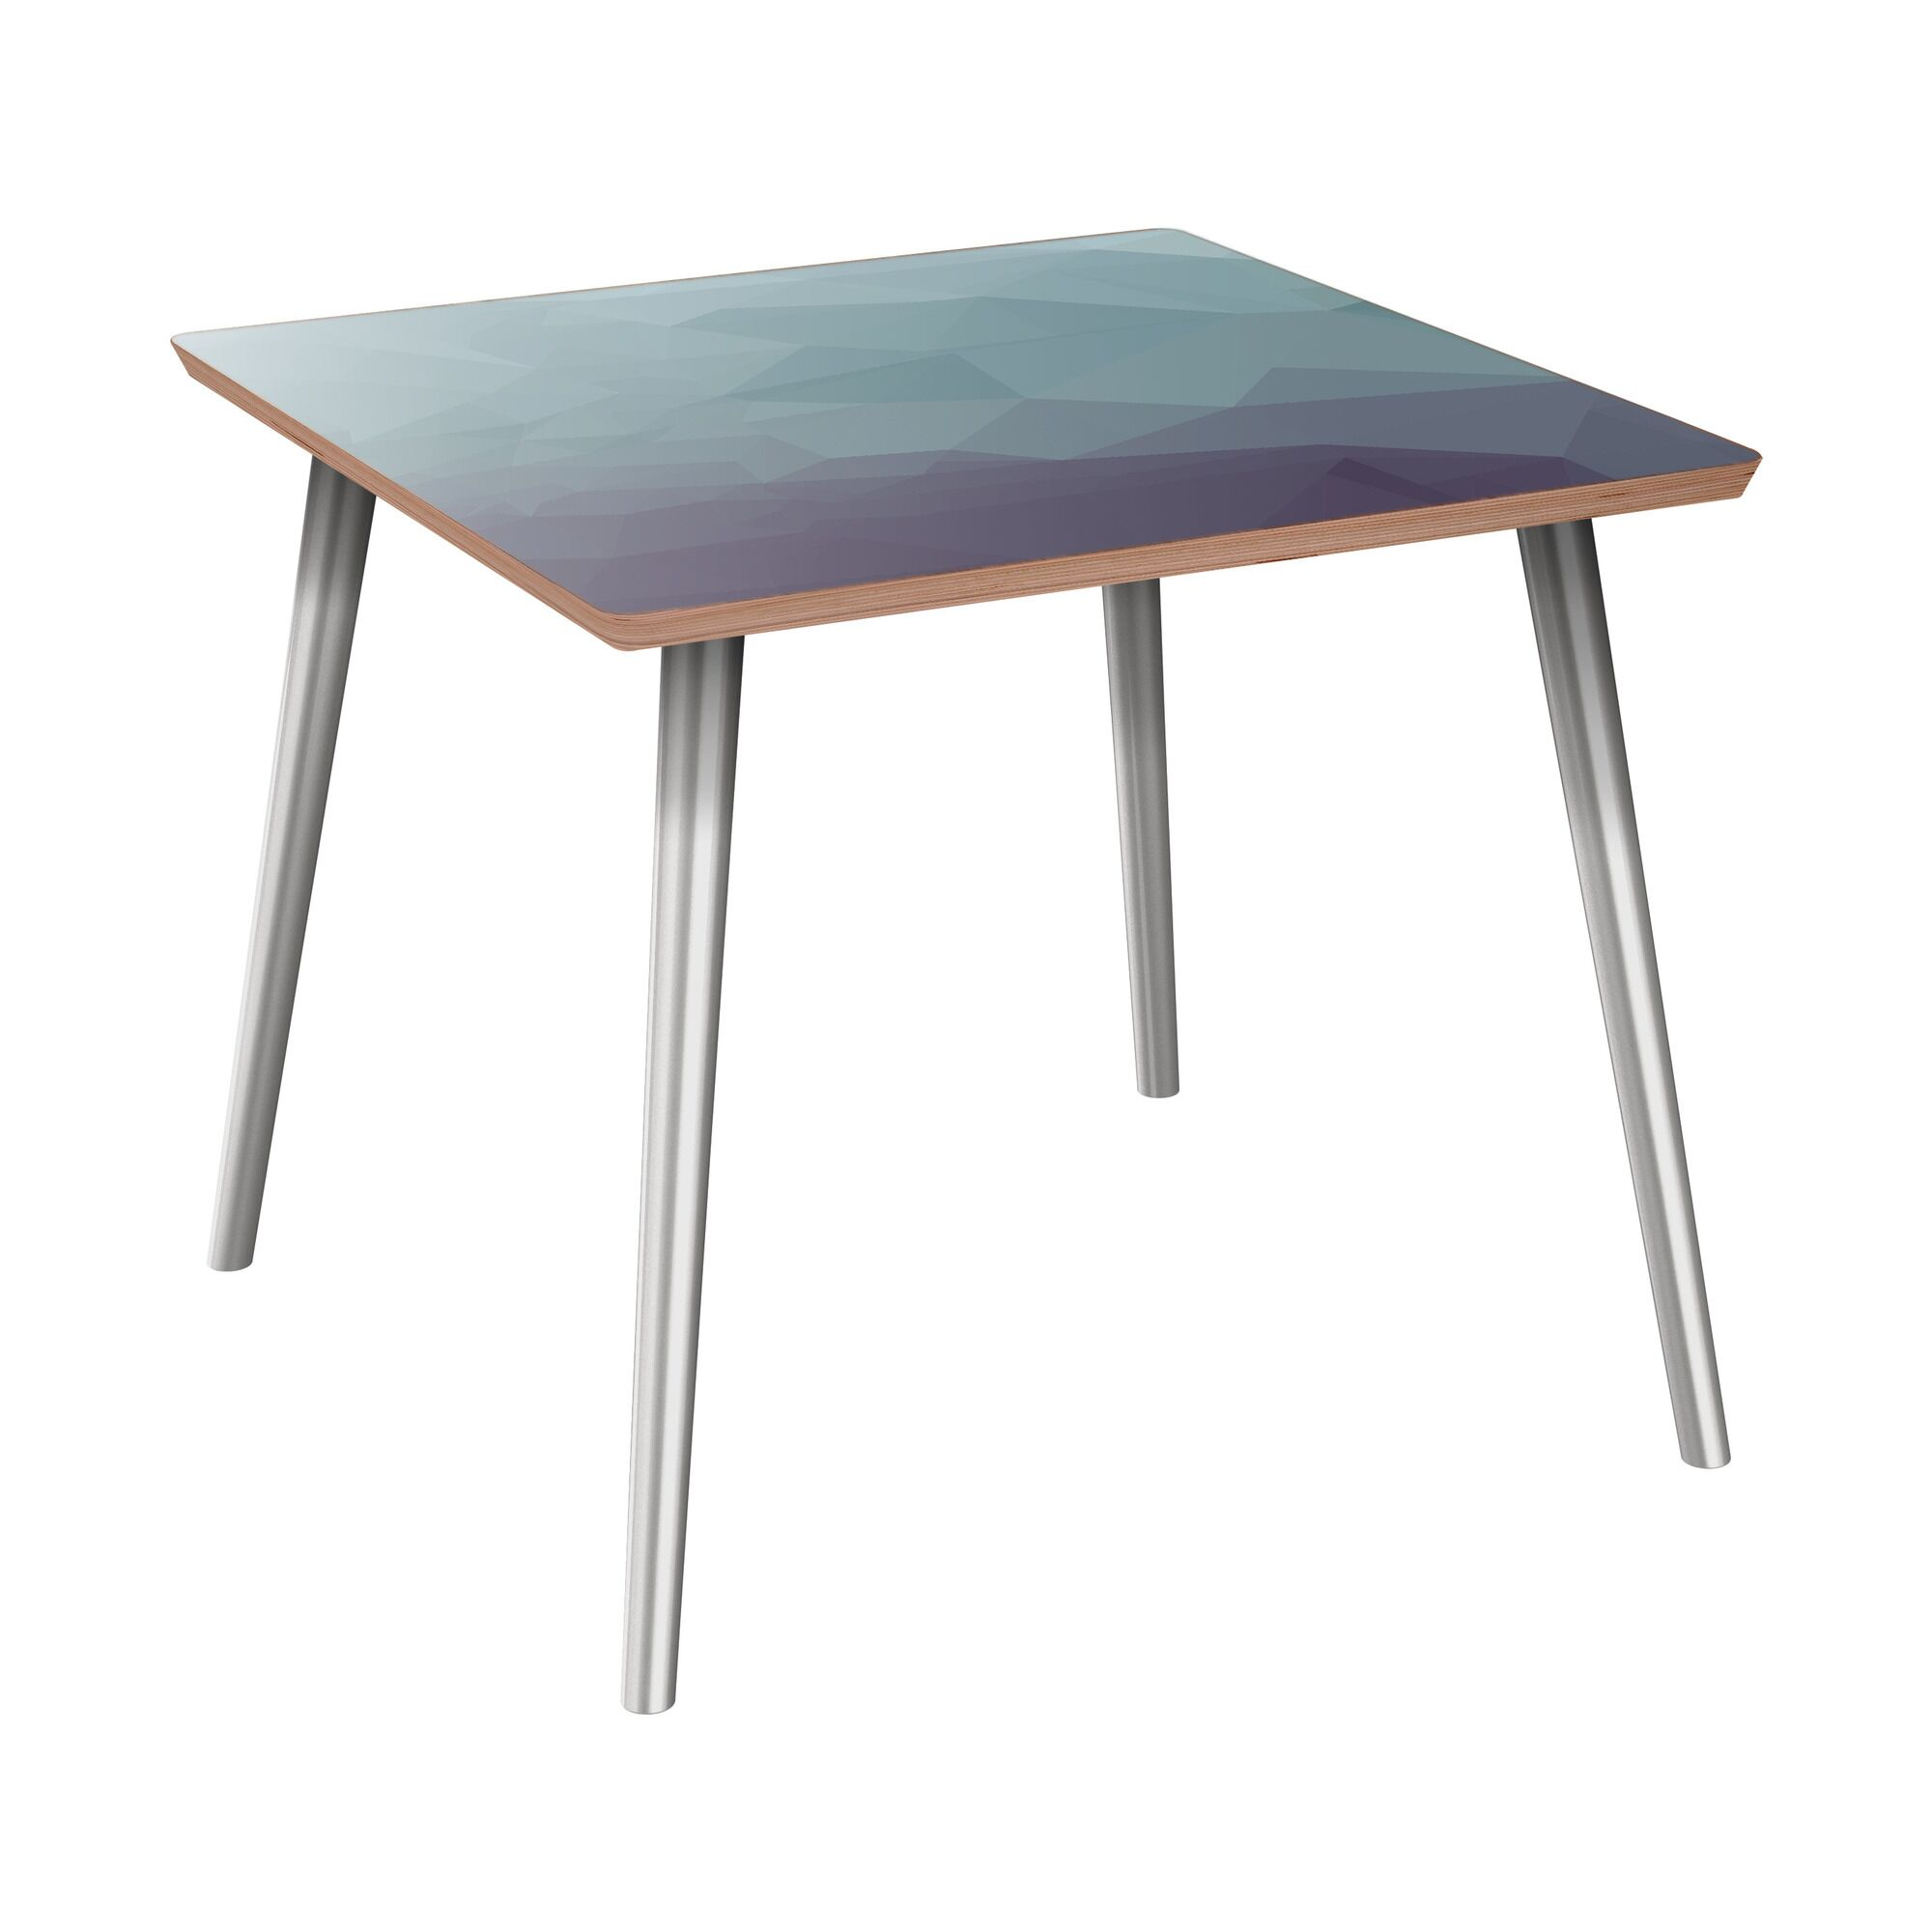 Kylertown End Table Table Base Color: Chrome, Table Top Boarder Color: Walnut, Table Top Color: Blue